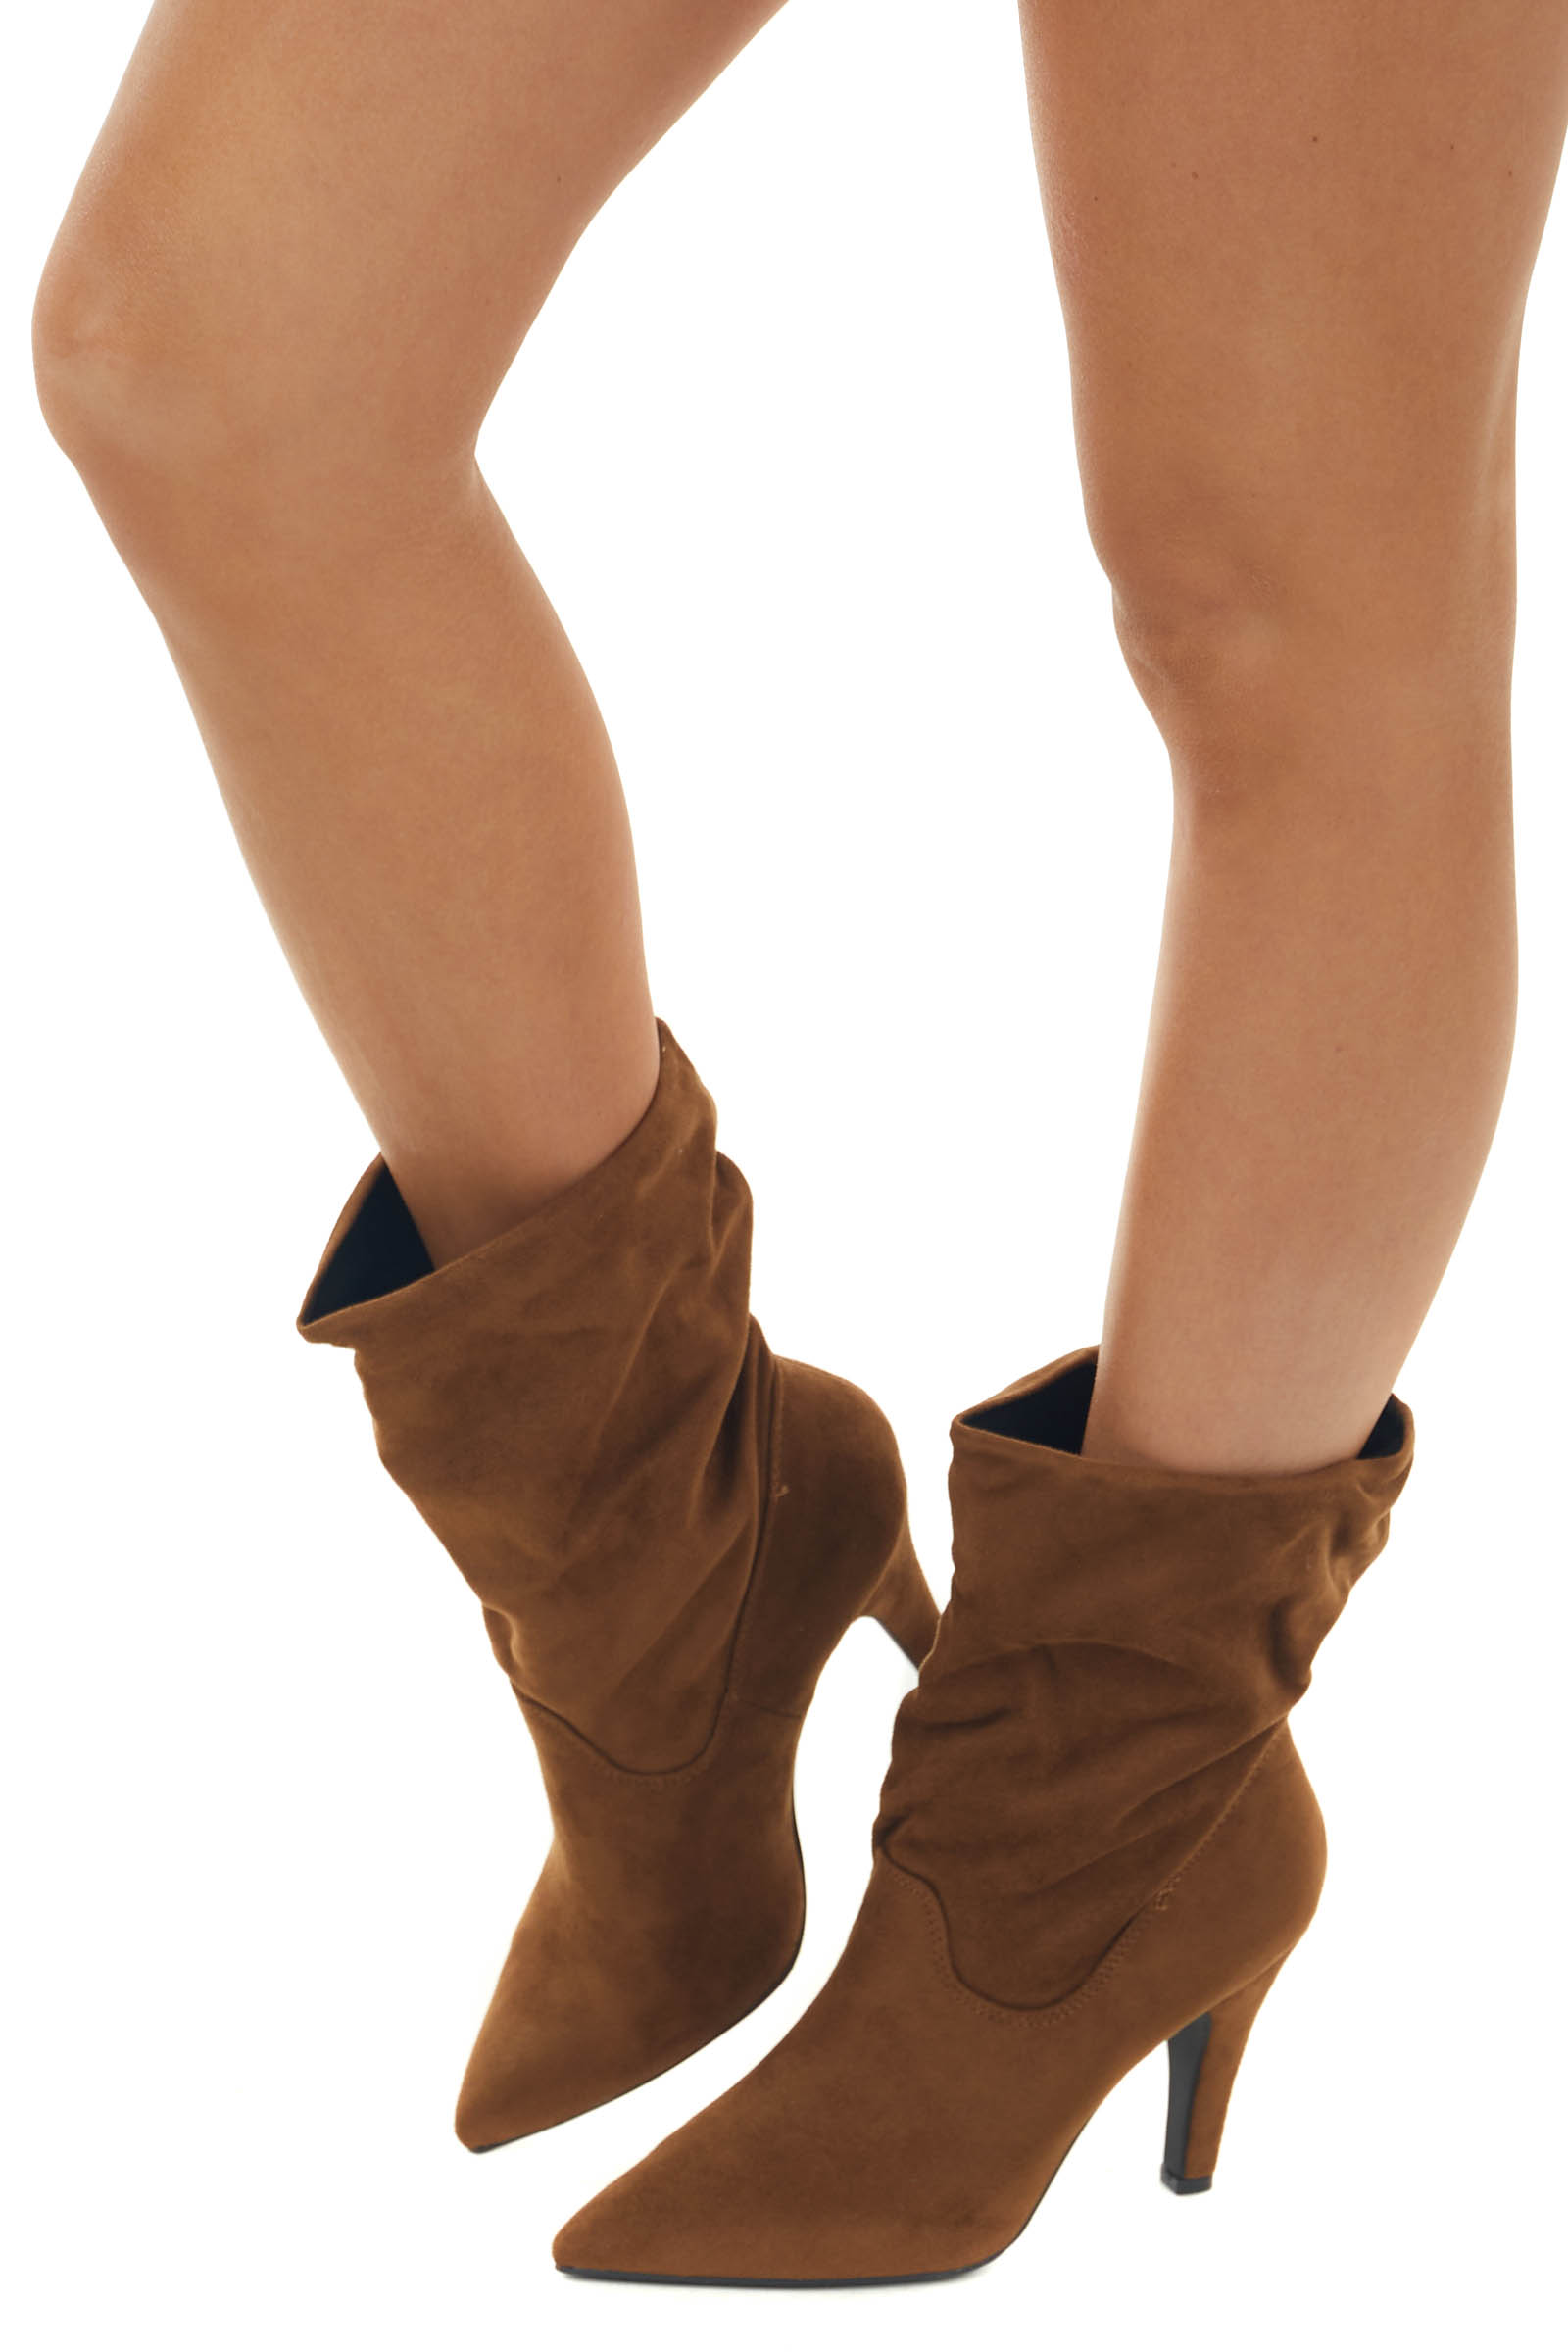 Sepia Suede Ankle High Slouchy Heeled Boots